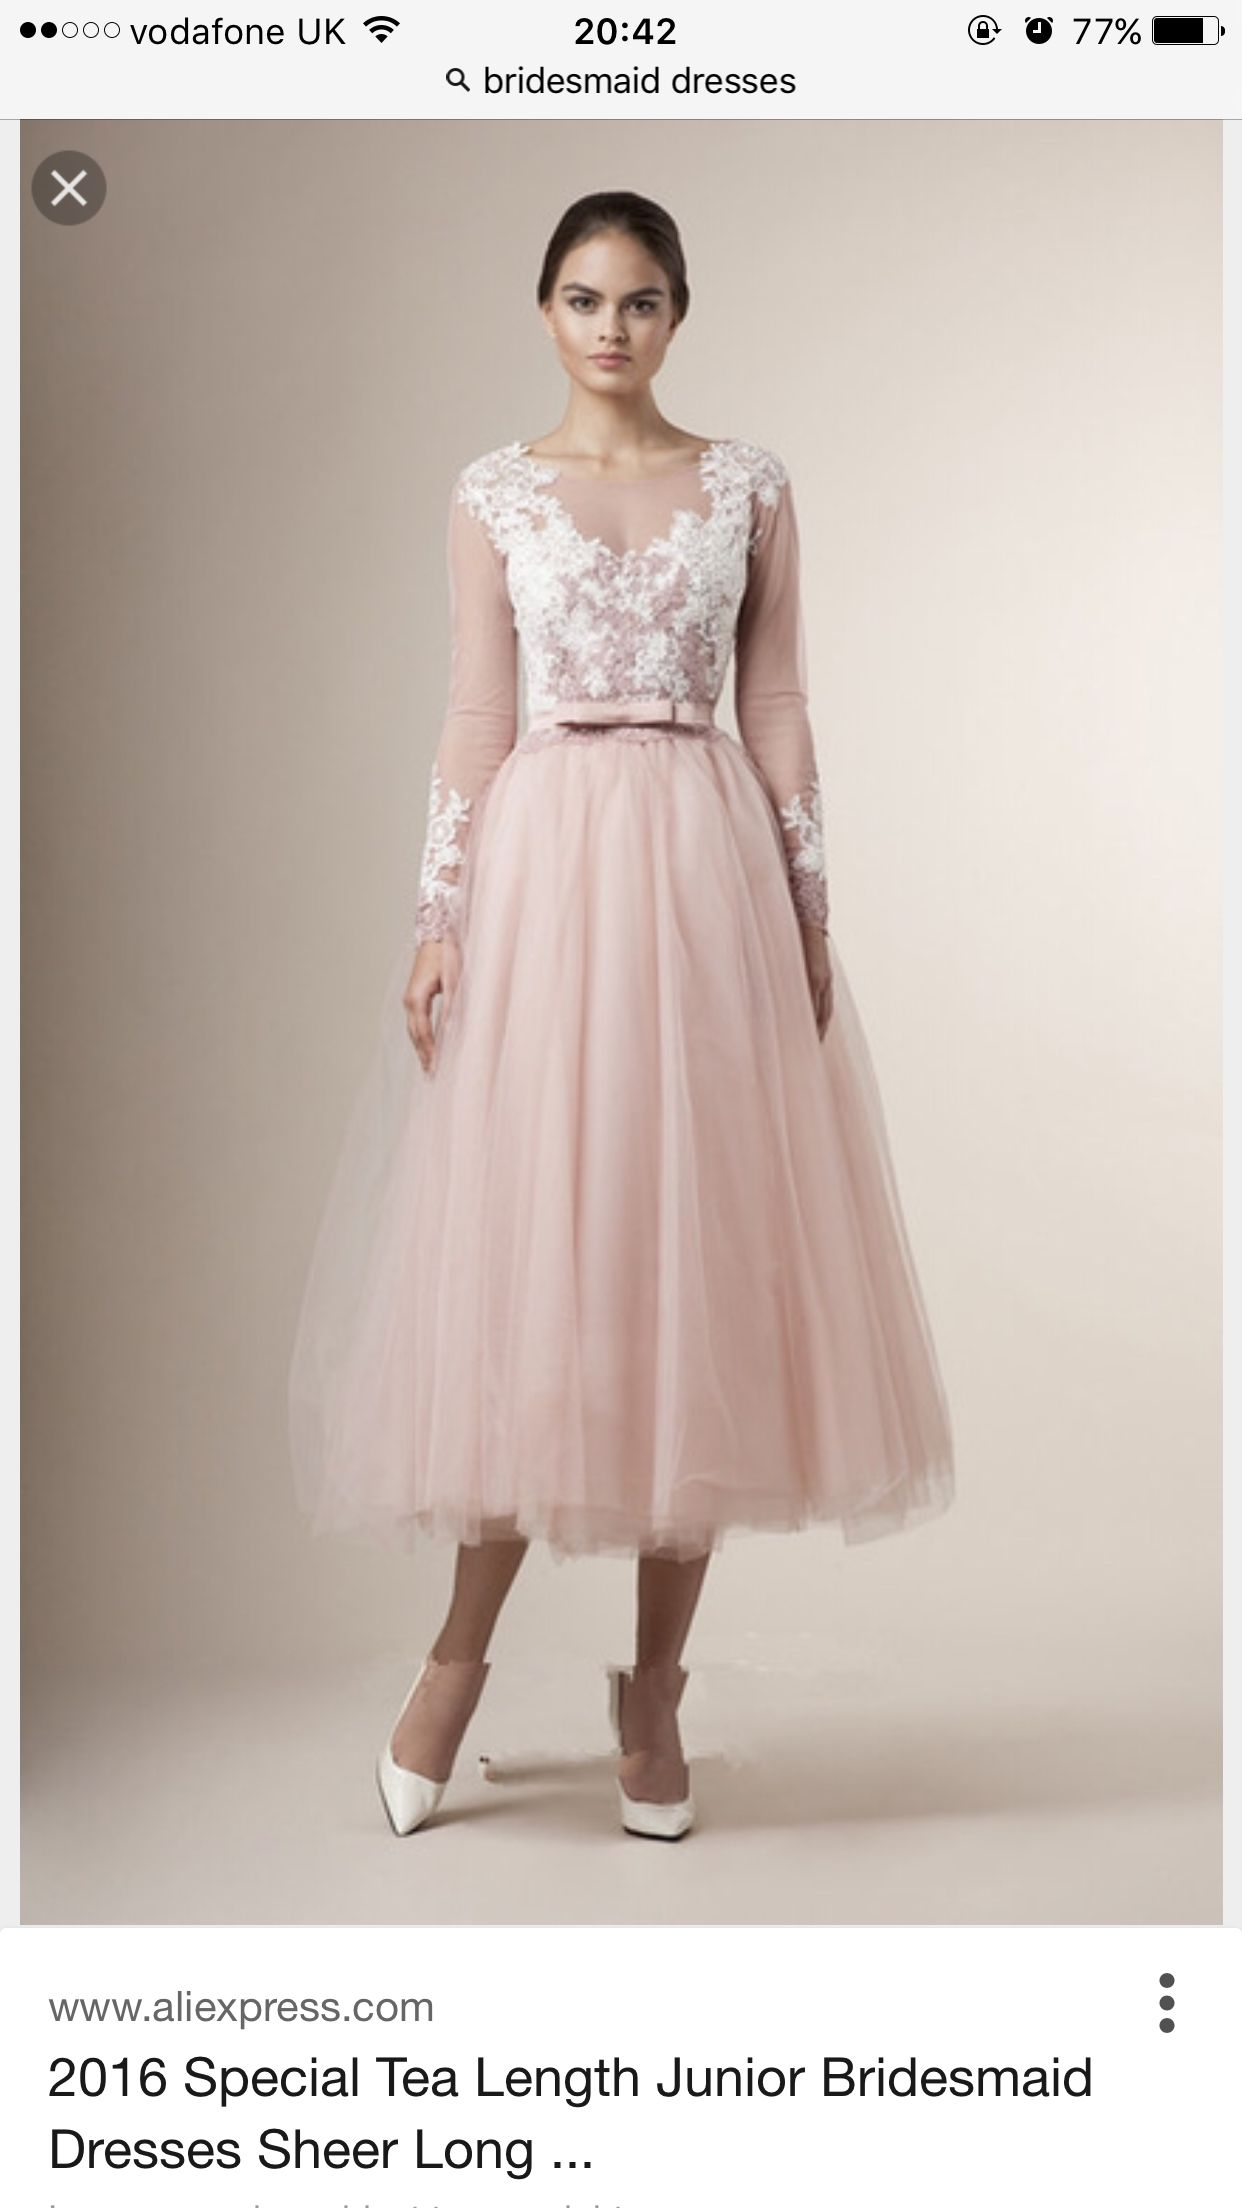 Pin by herzmalerei on wedding her pinterest wedding 2016 special tea length junior bridesmaid dresses sheer long sleeves lace appliques belt bow vintage a line short party bridesmaid dressesweddings ombrellifo Choice Image